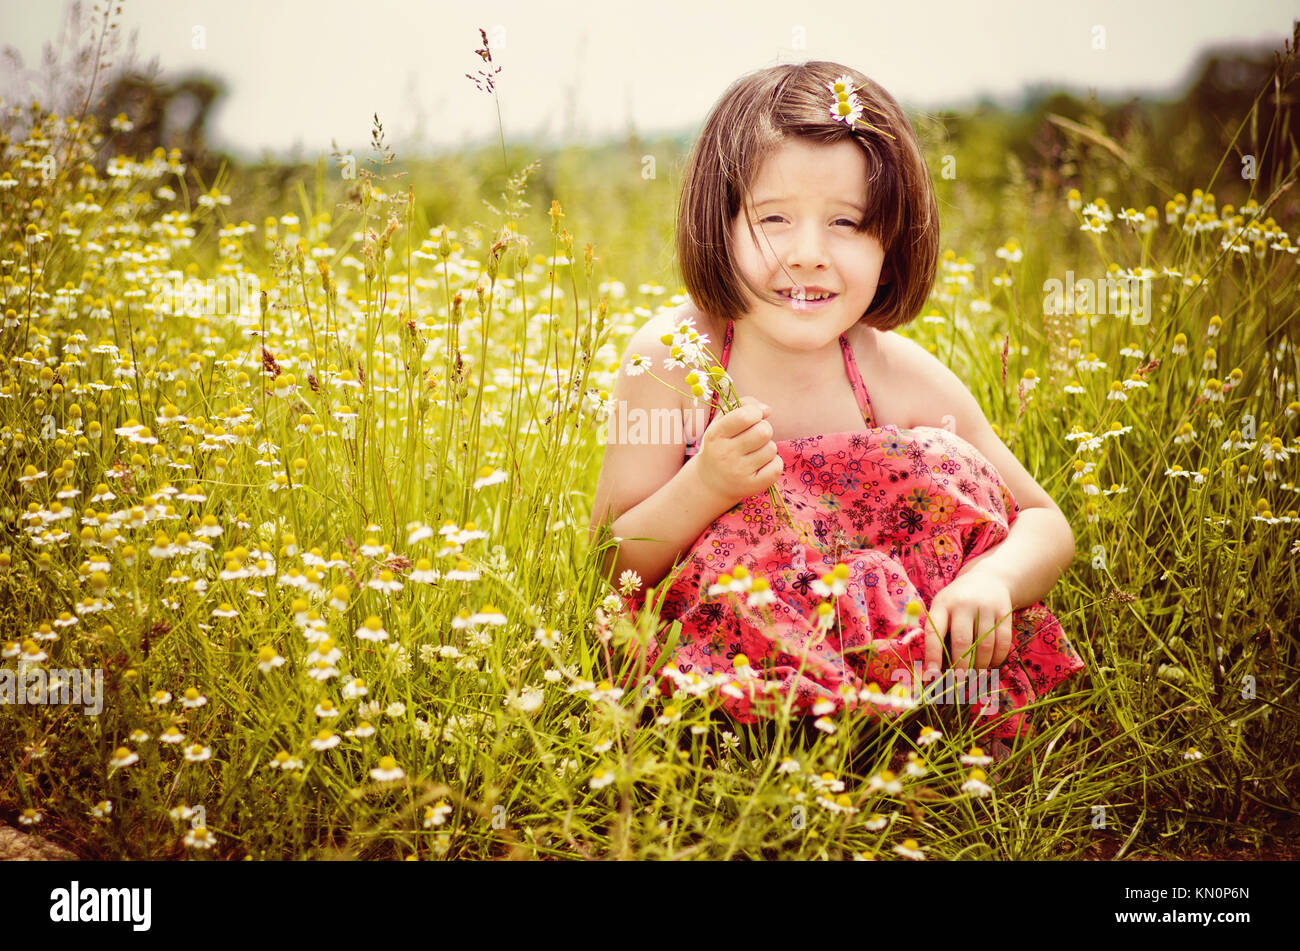 Cute little girl 2-4 years sitting in the grass, holding flowers and smiling. Chamomile bouquet in her hands. Summer - Stock Image